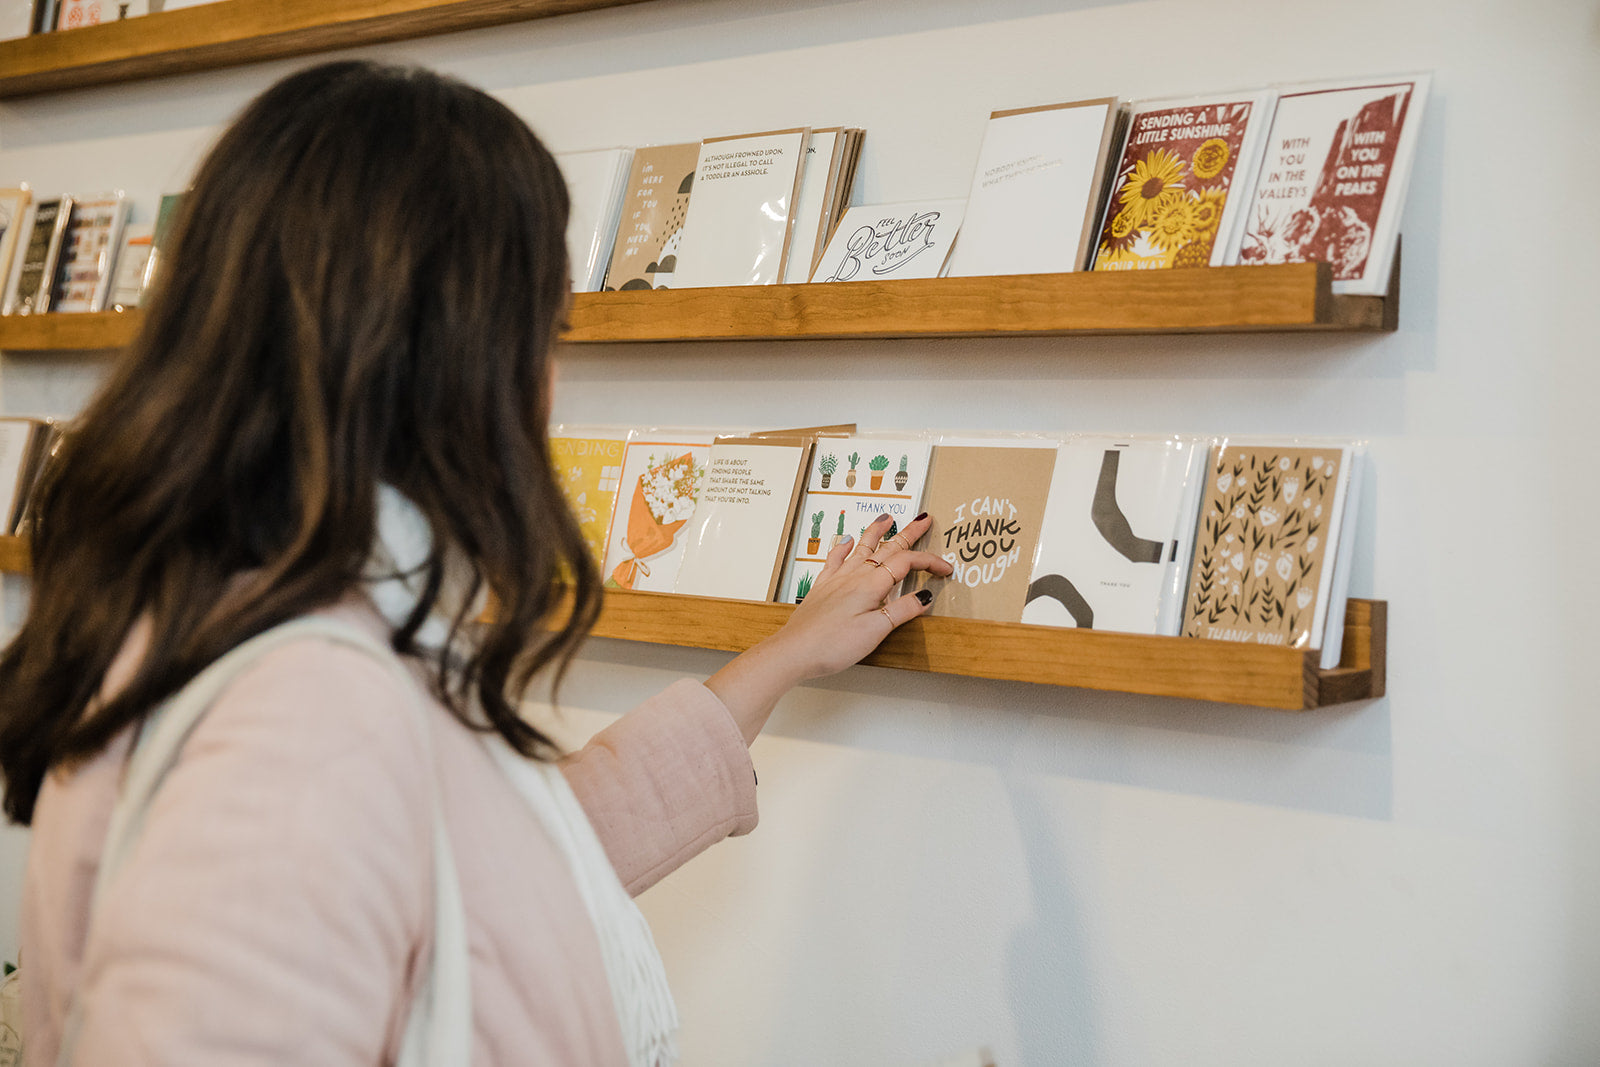 Woman browsing a variety of greeting cards along a wall.